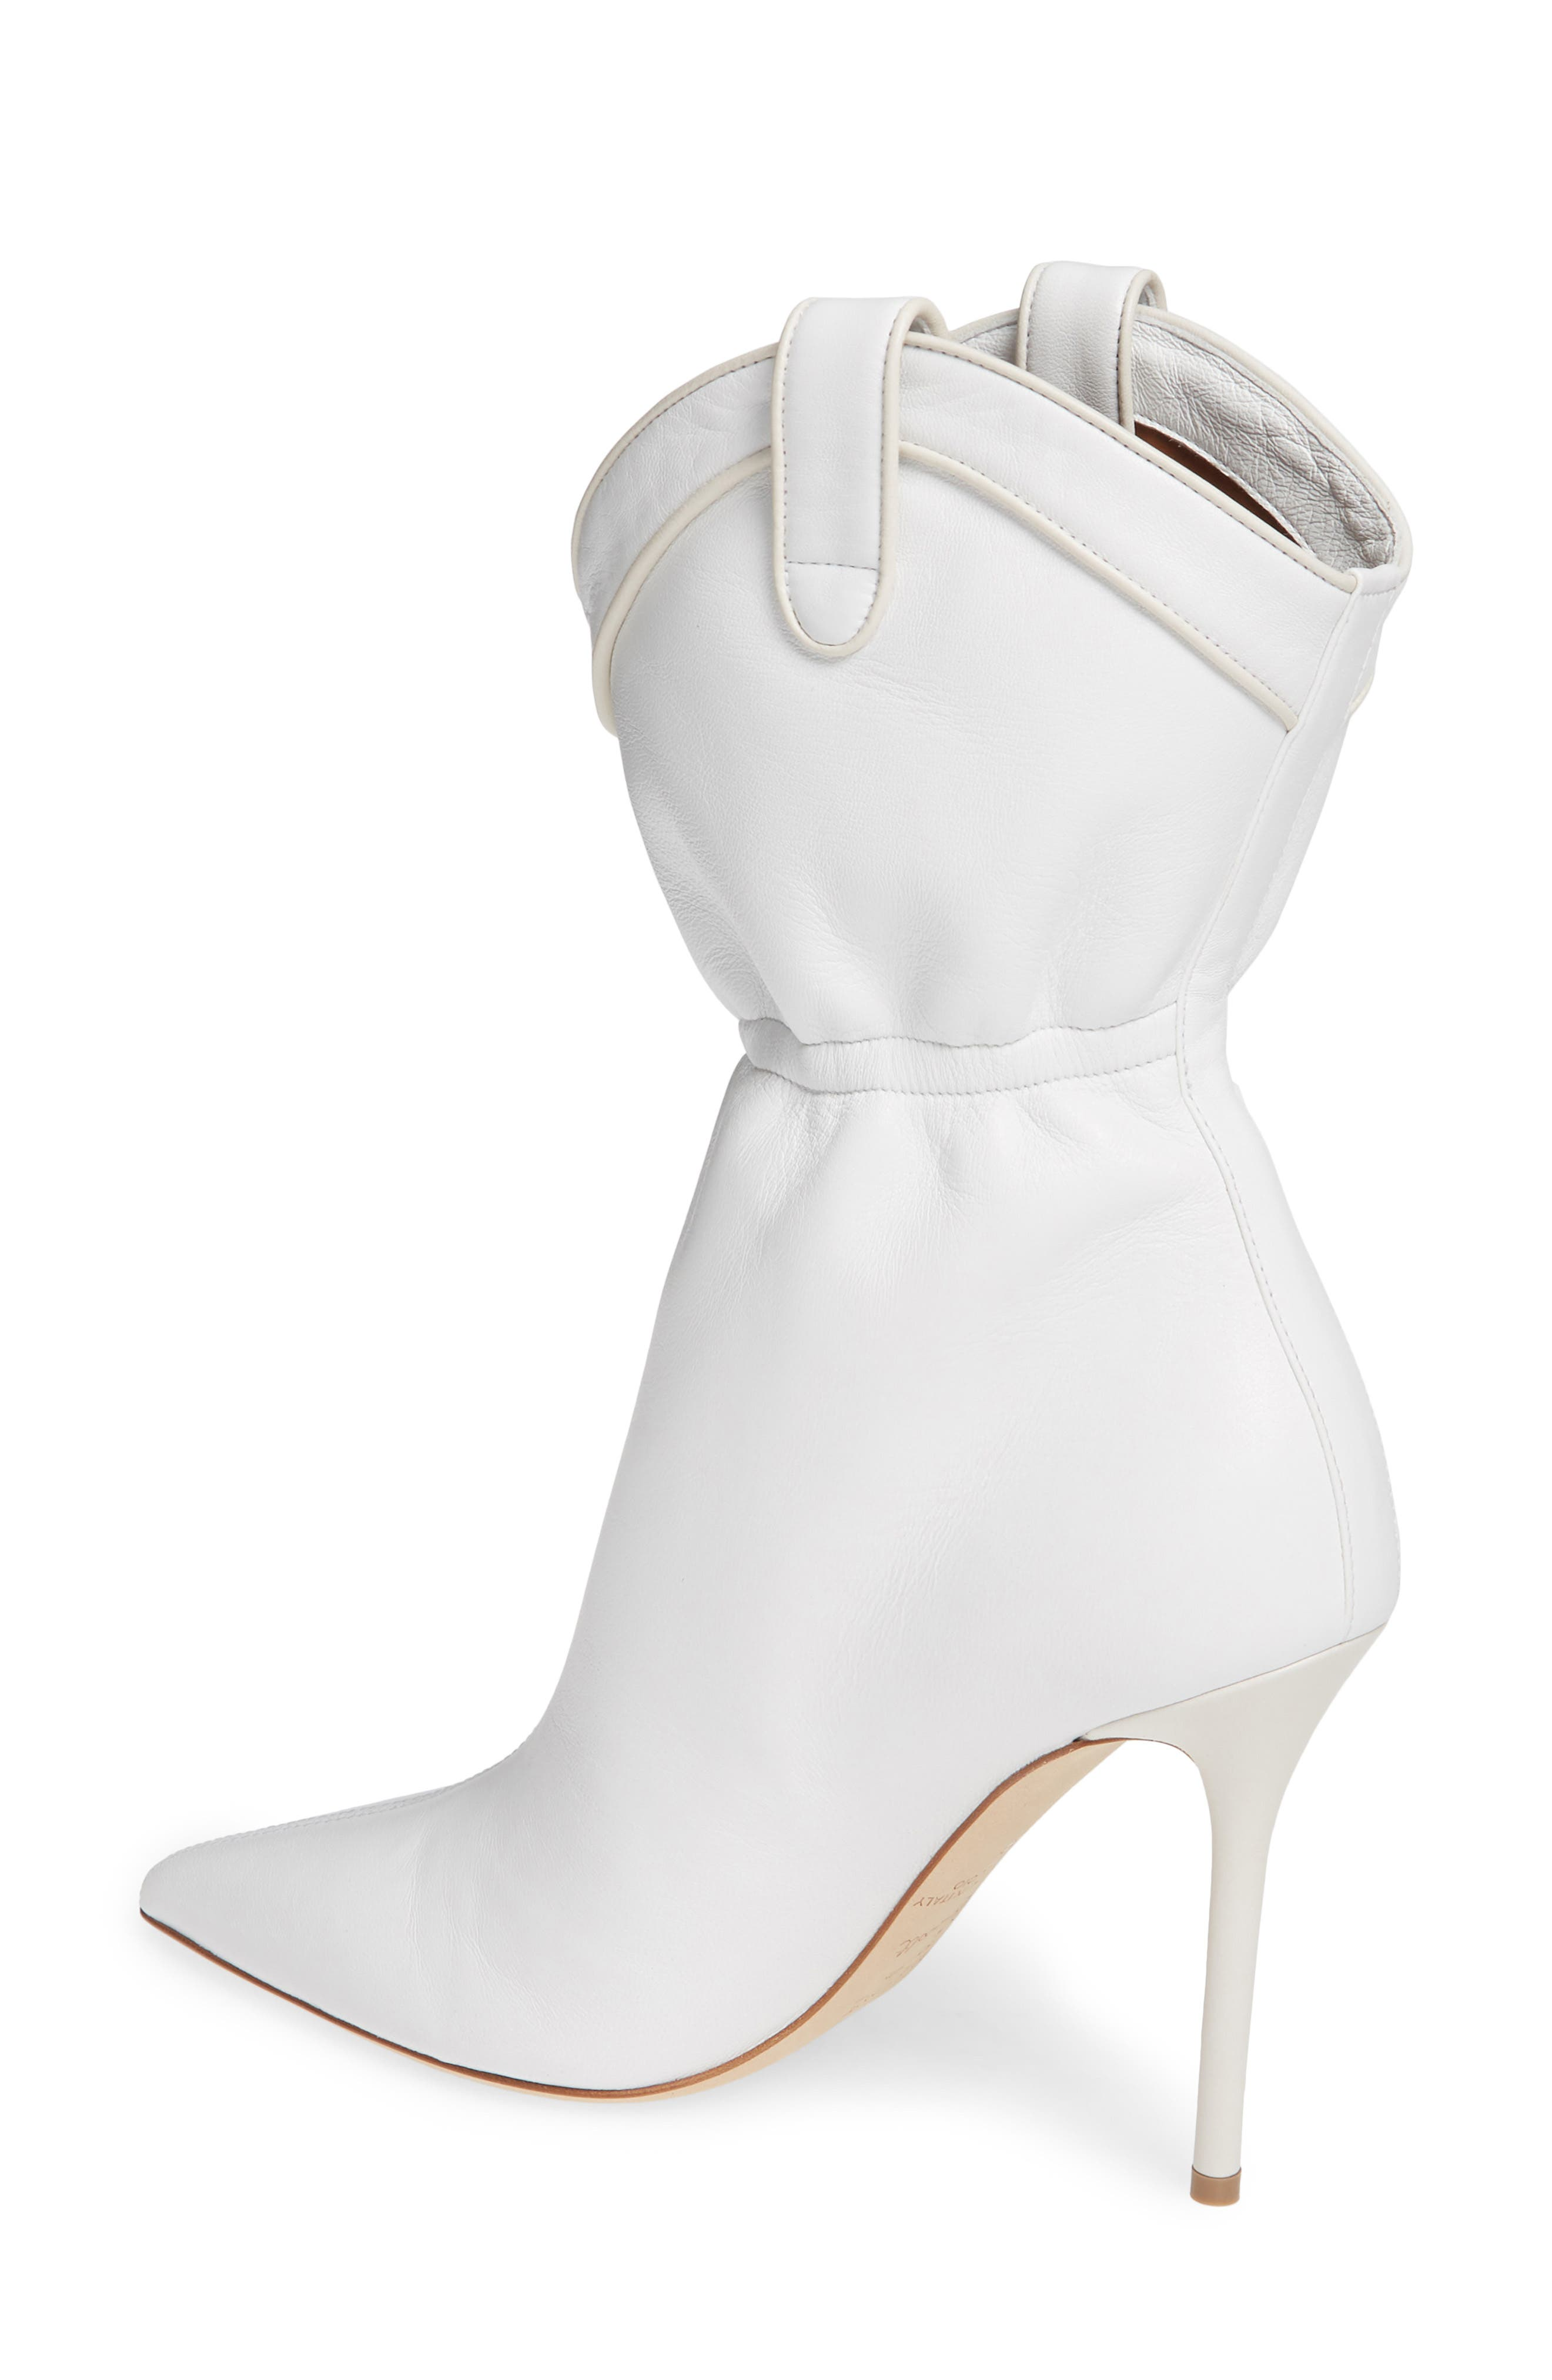 MALONE SOULIERS,                             Daisy Cinched Bootie,                             Alternate thumbnail 2, color,                             WHITE LEATHER